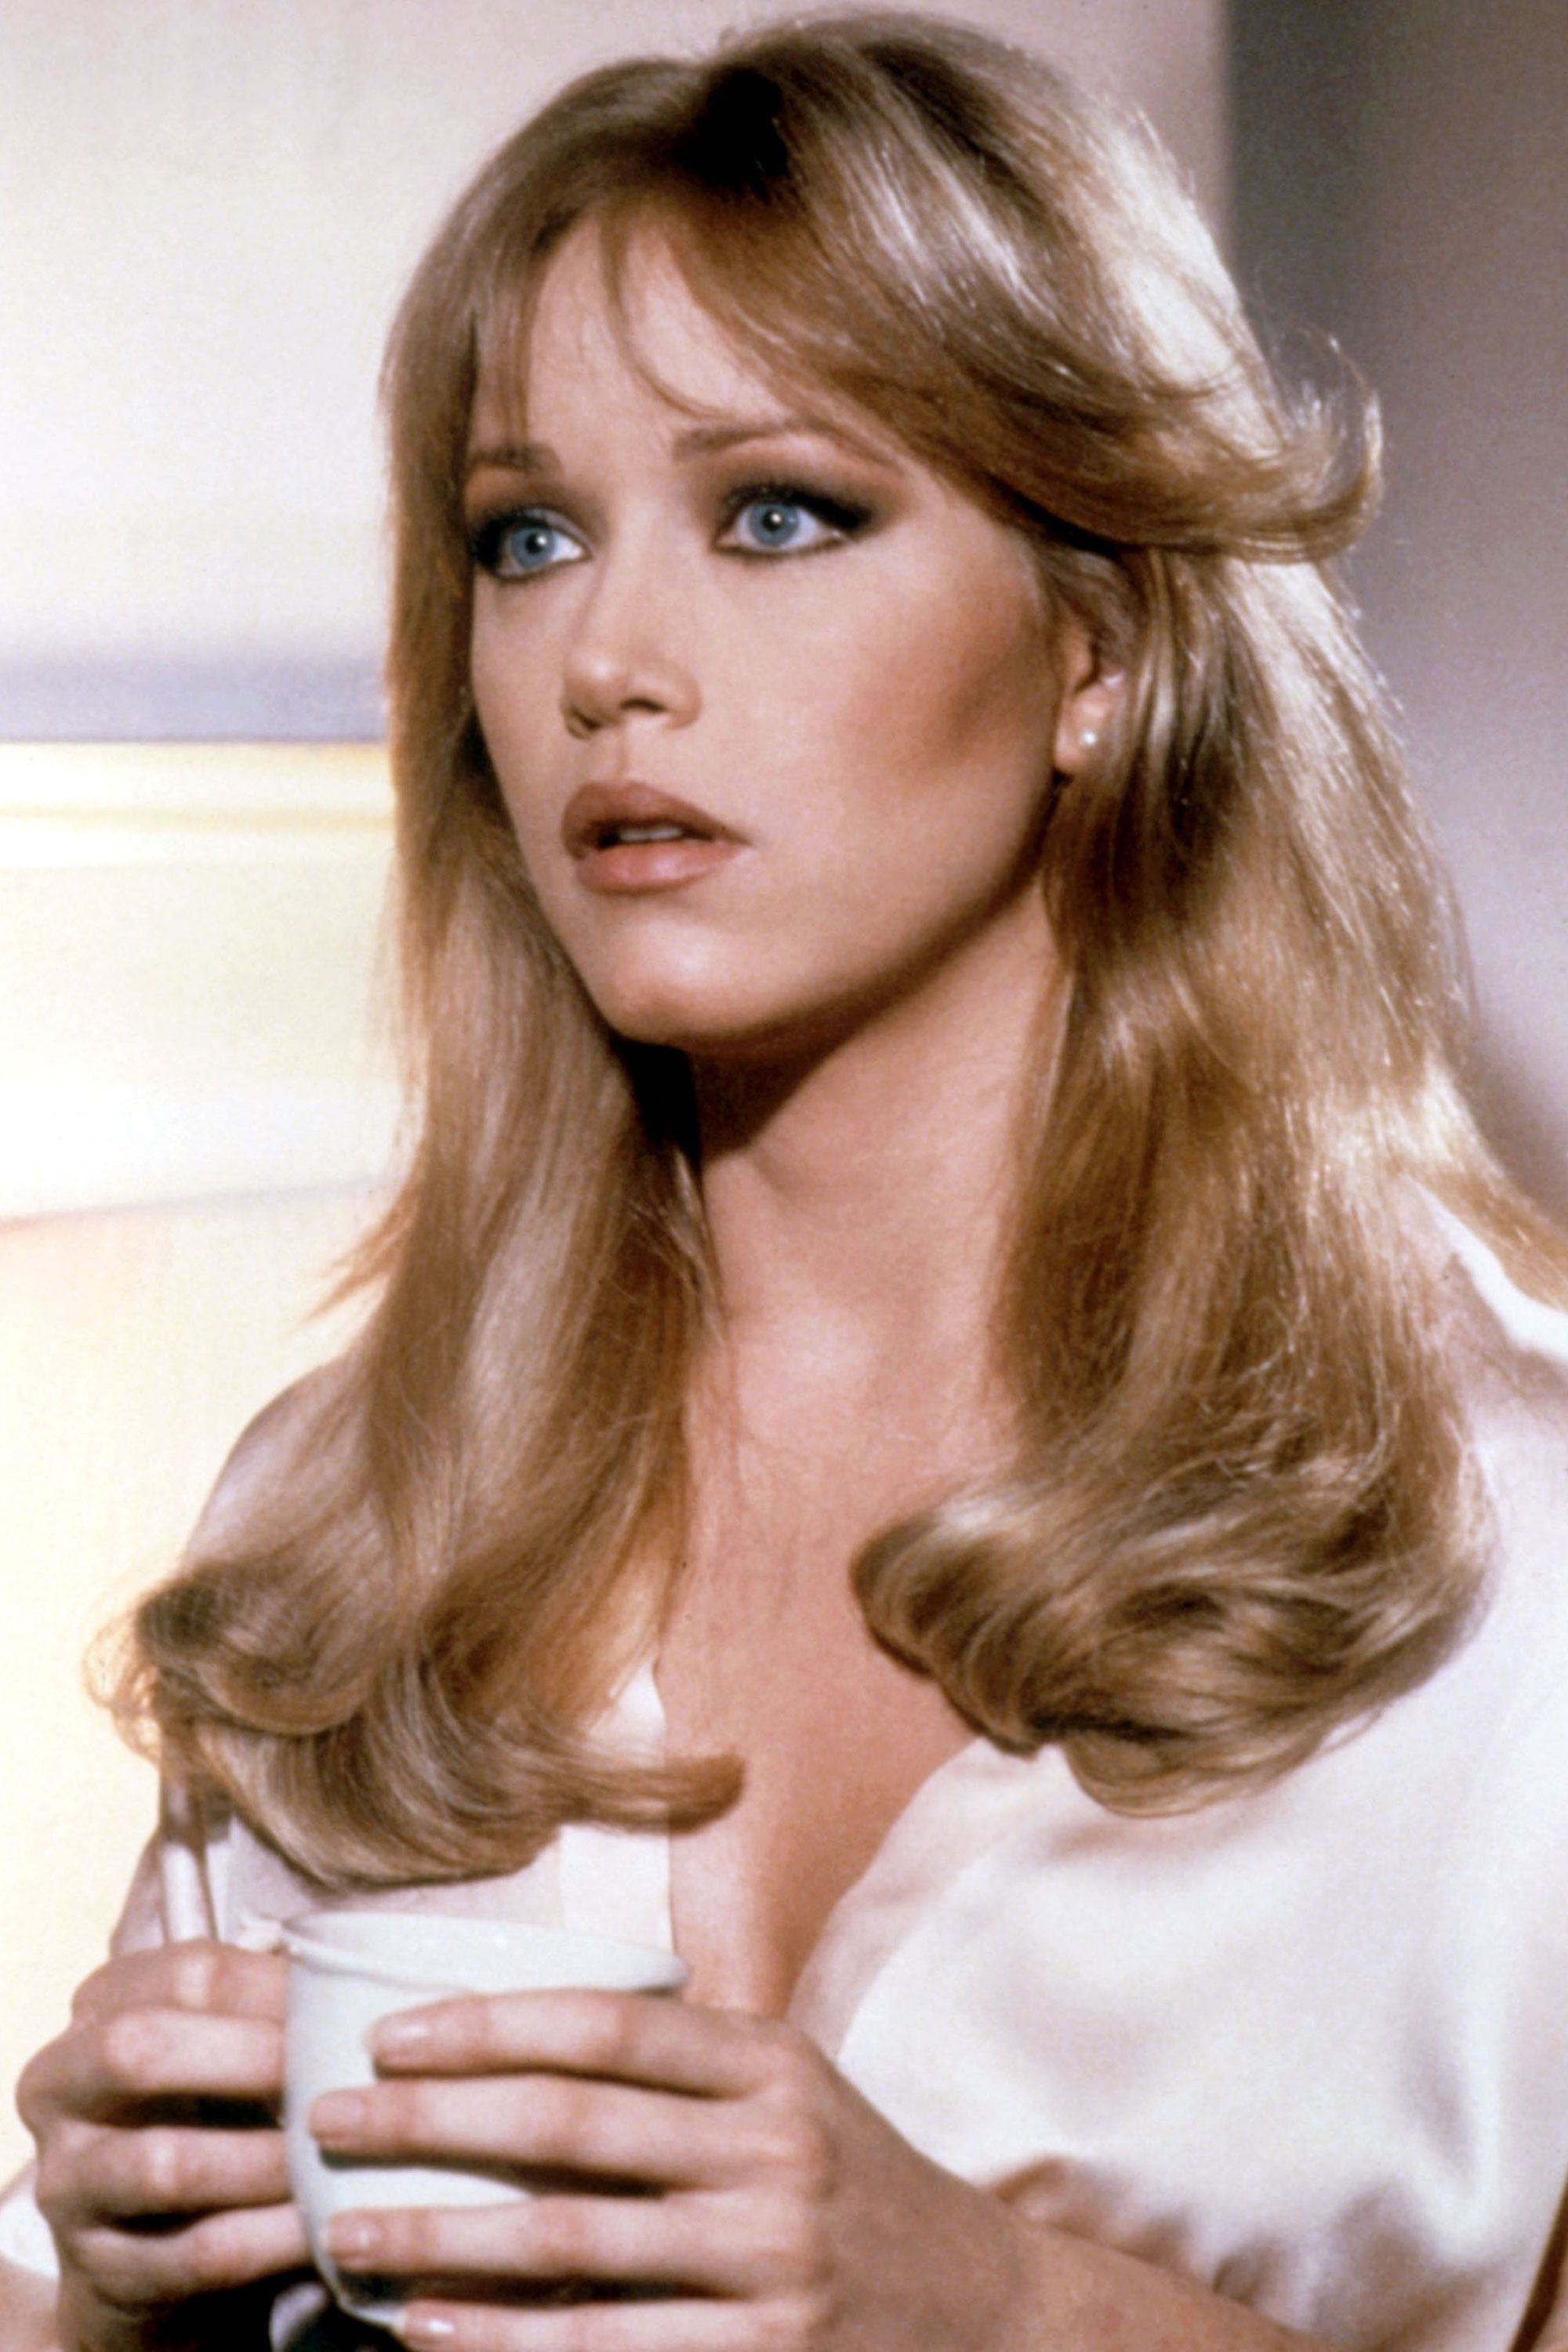 The 26 Best Bond Girls Of All Time With Images Best Bond Girls